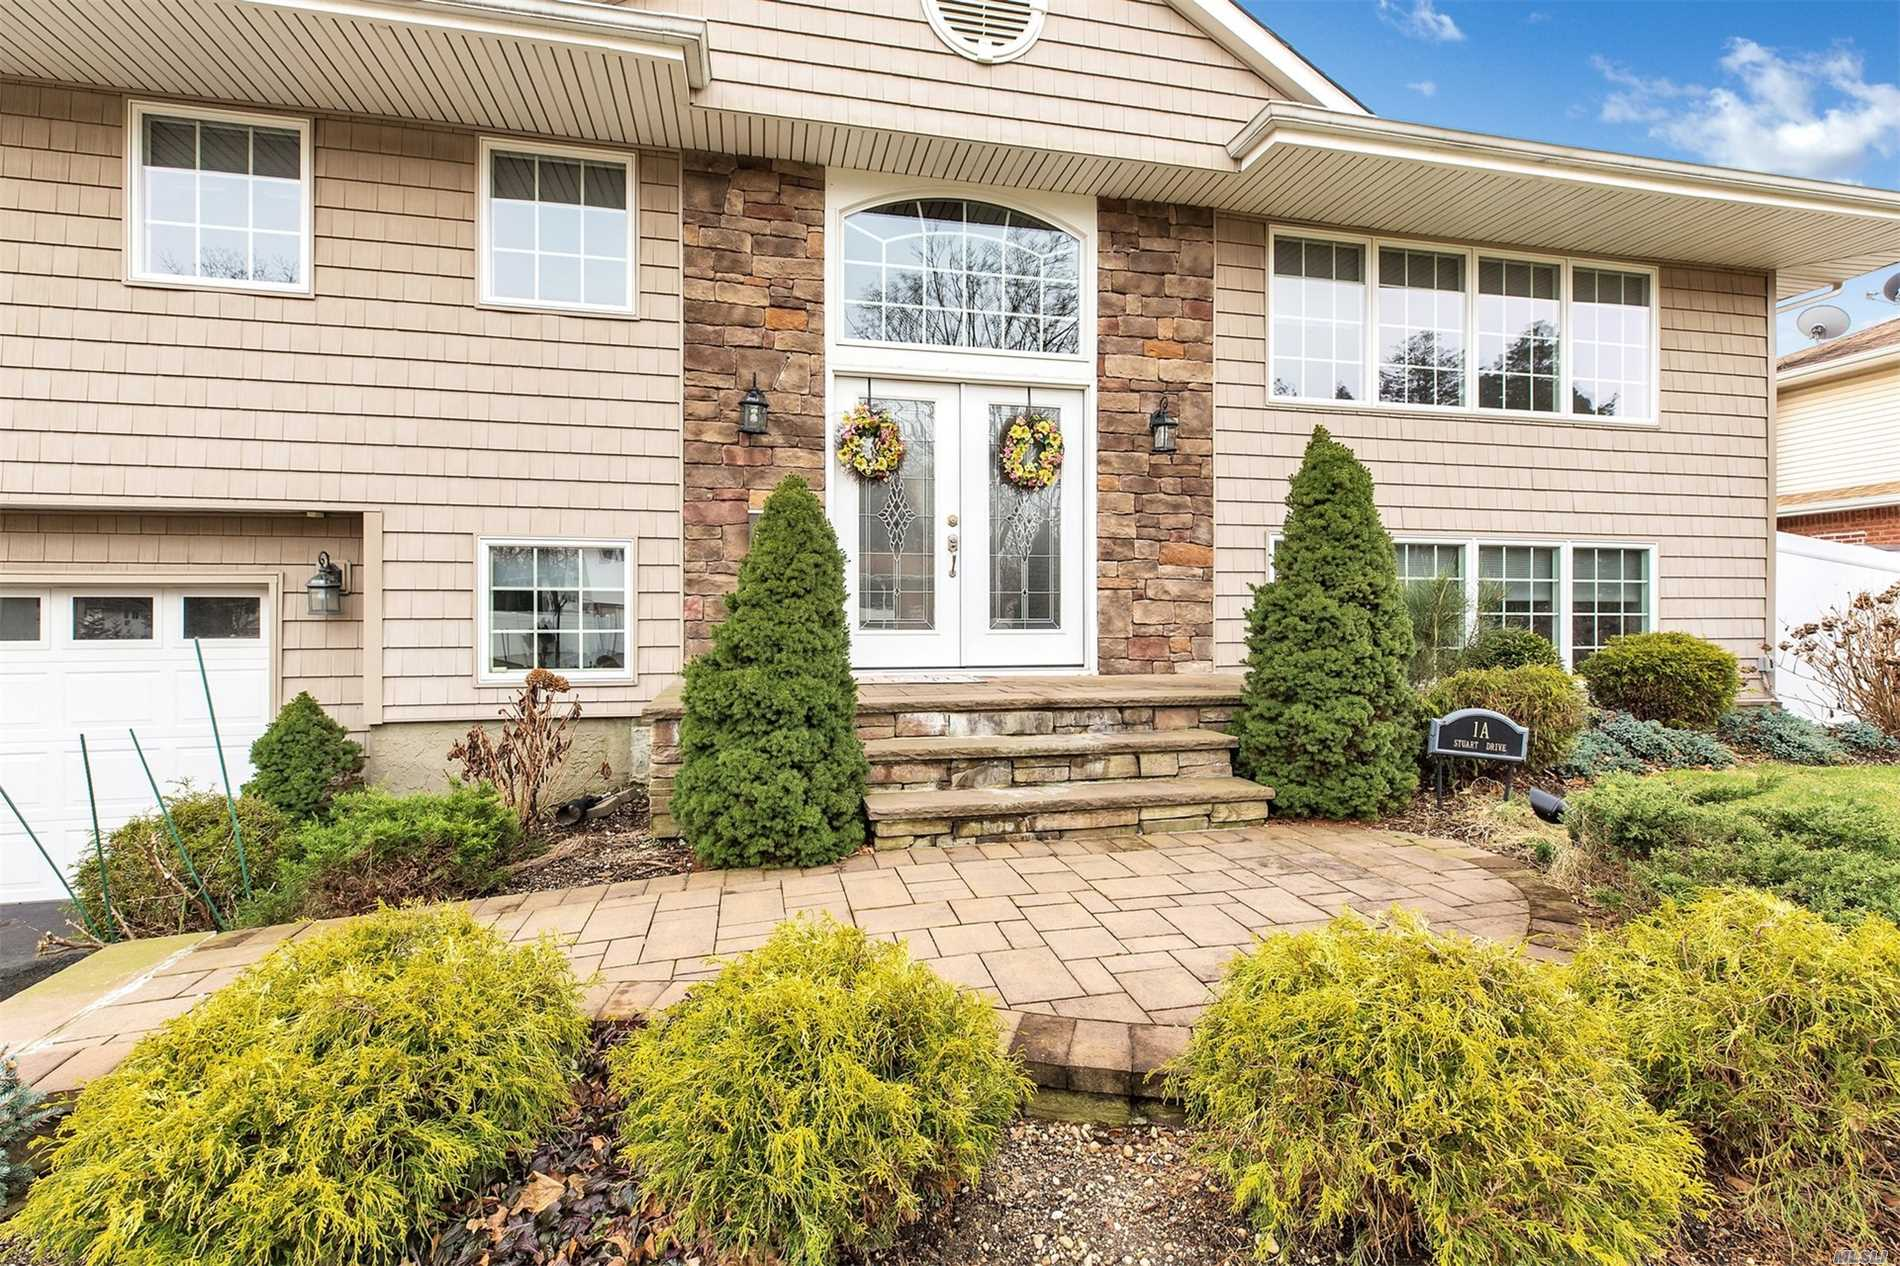 Syosset. Beautifully Maintained High Ranch With Many Upgrades. Updated Kitchen Has Open Flow To Dining Room. Spacious Master Bedroom Boasts Oversized Ensuite Bathroom And Closets Galore. Family Room With Fireplace Is Sure To Please. Backyard Is Perfect For Entertaining With A Beautiful Salt Water Pool. Don't Miss Out!